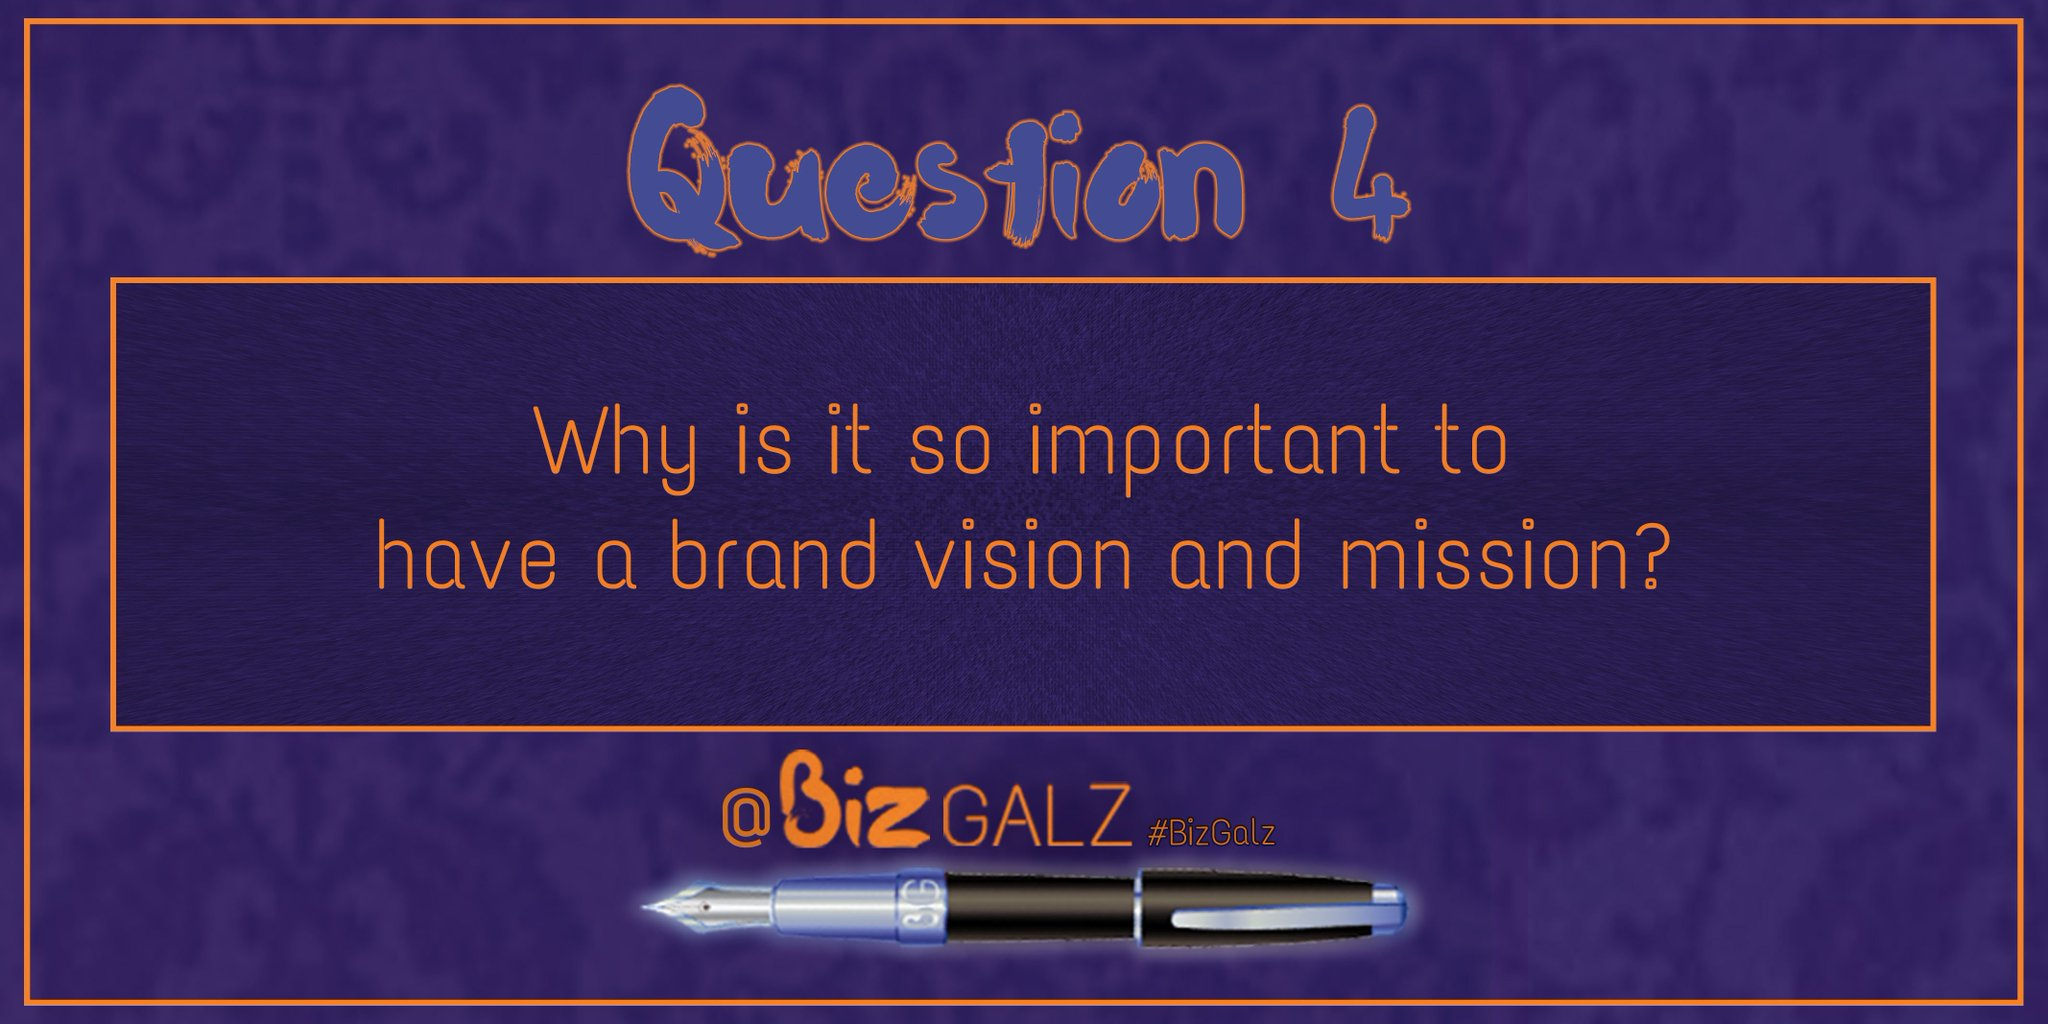 Q4 Why is it so important to have a brand vision and mission? #BizGalz https://t.co/ouTKReyDPL